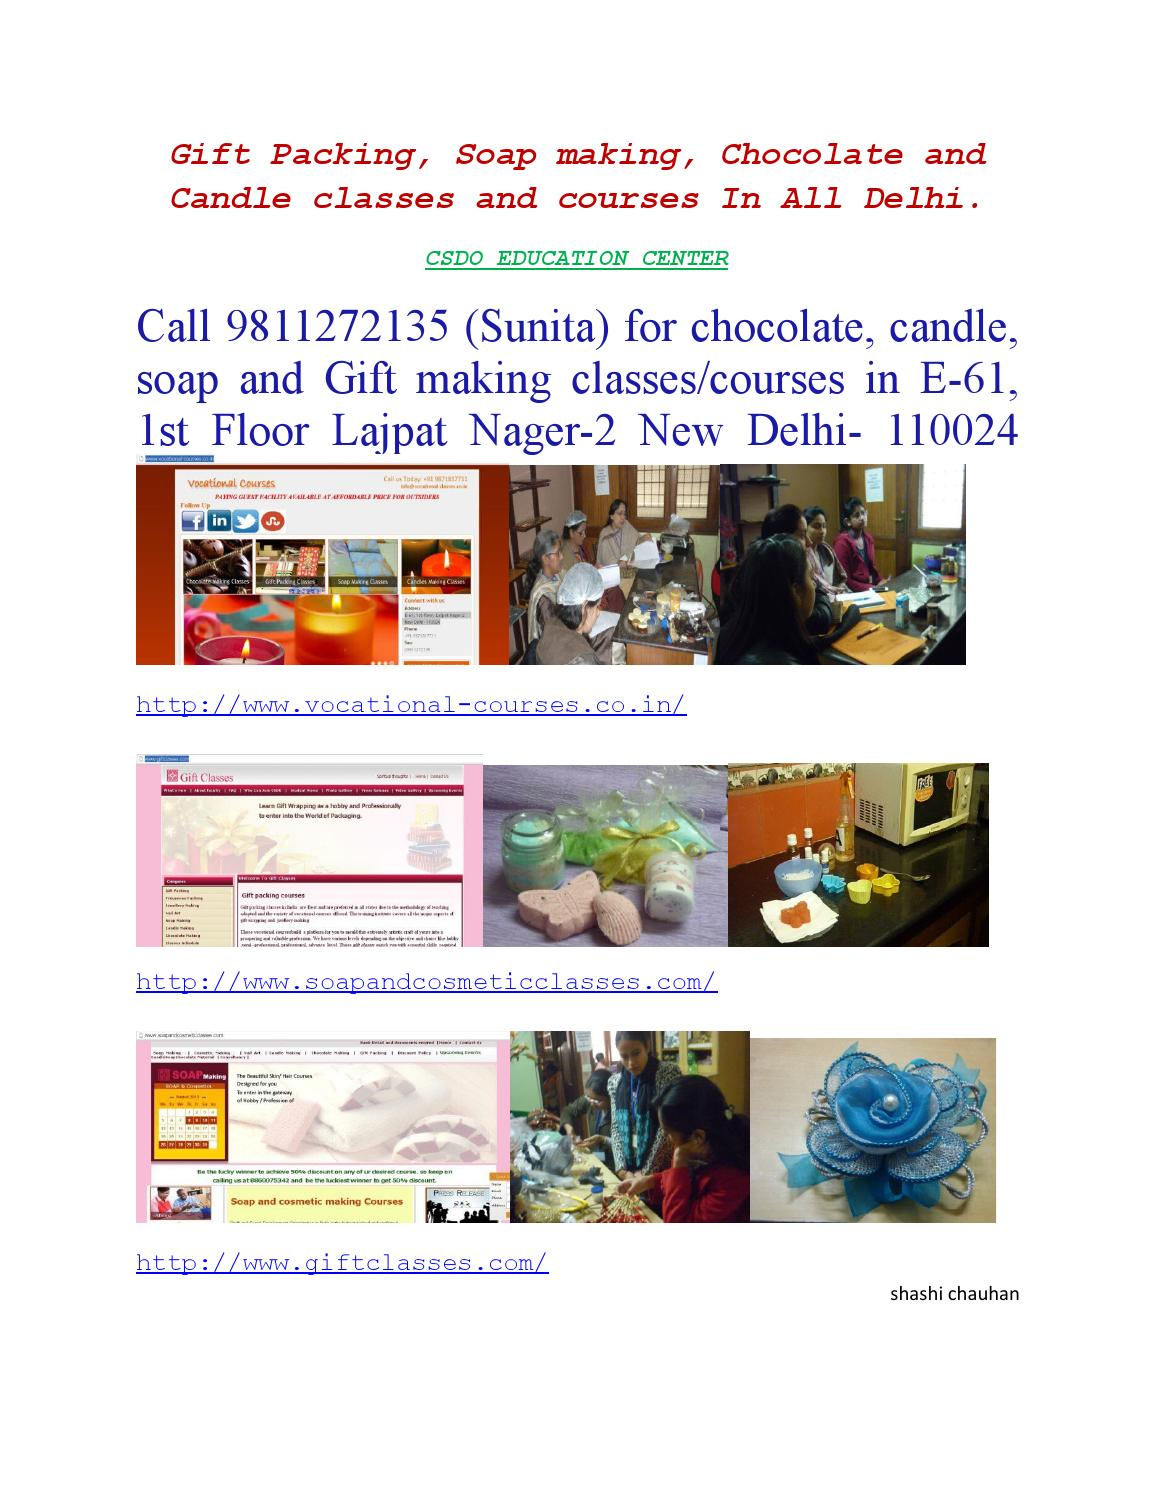 Chocolate,Gift Candle and soap courses provider is CSDO in